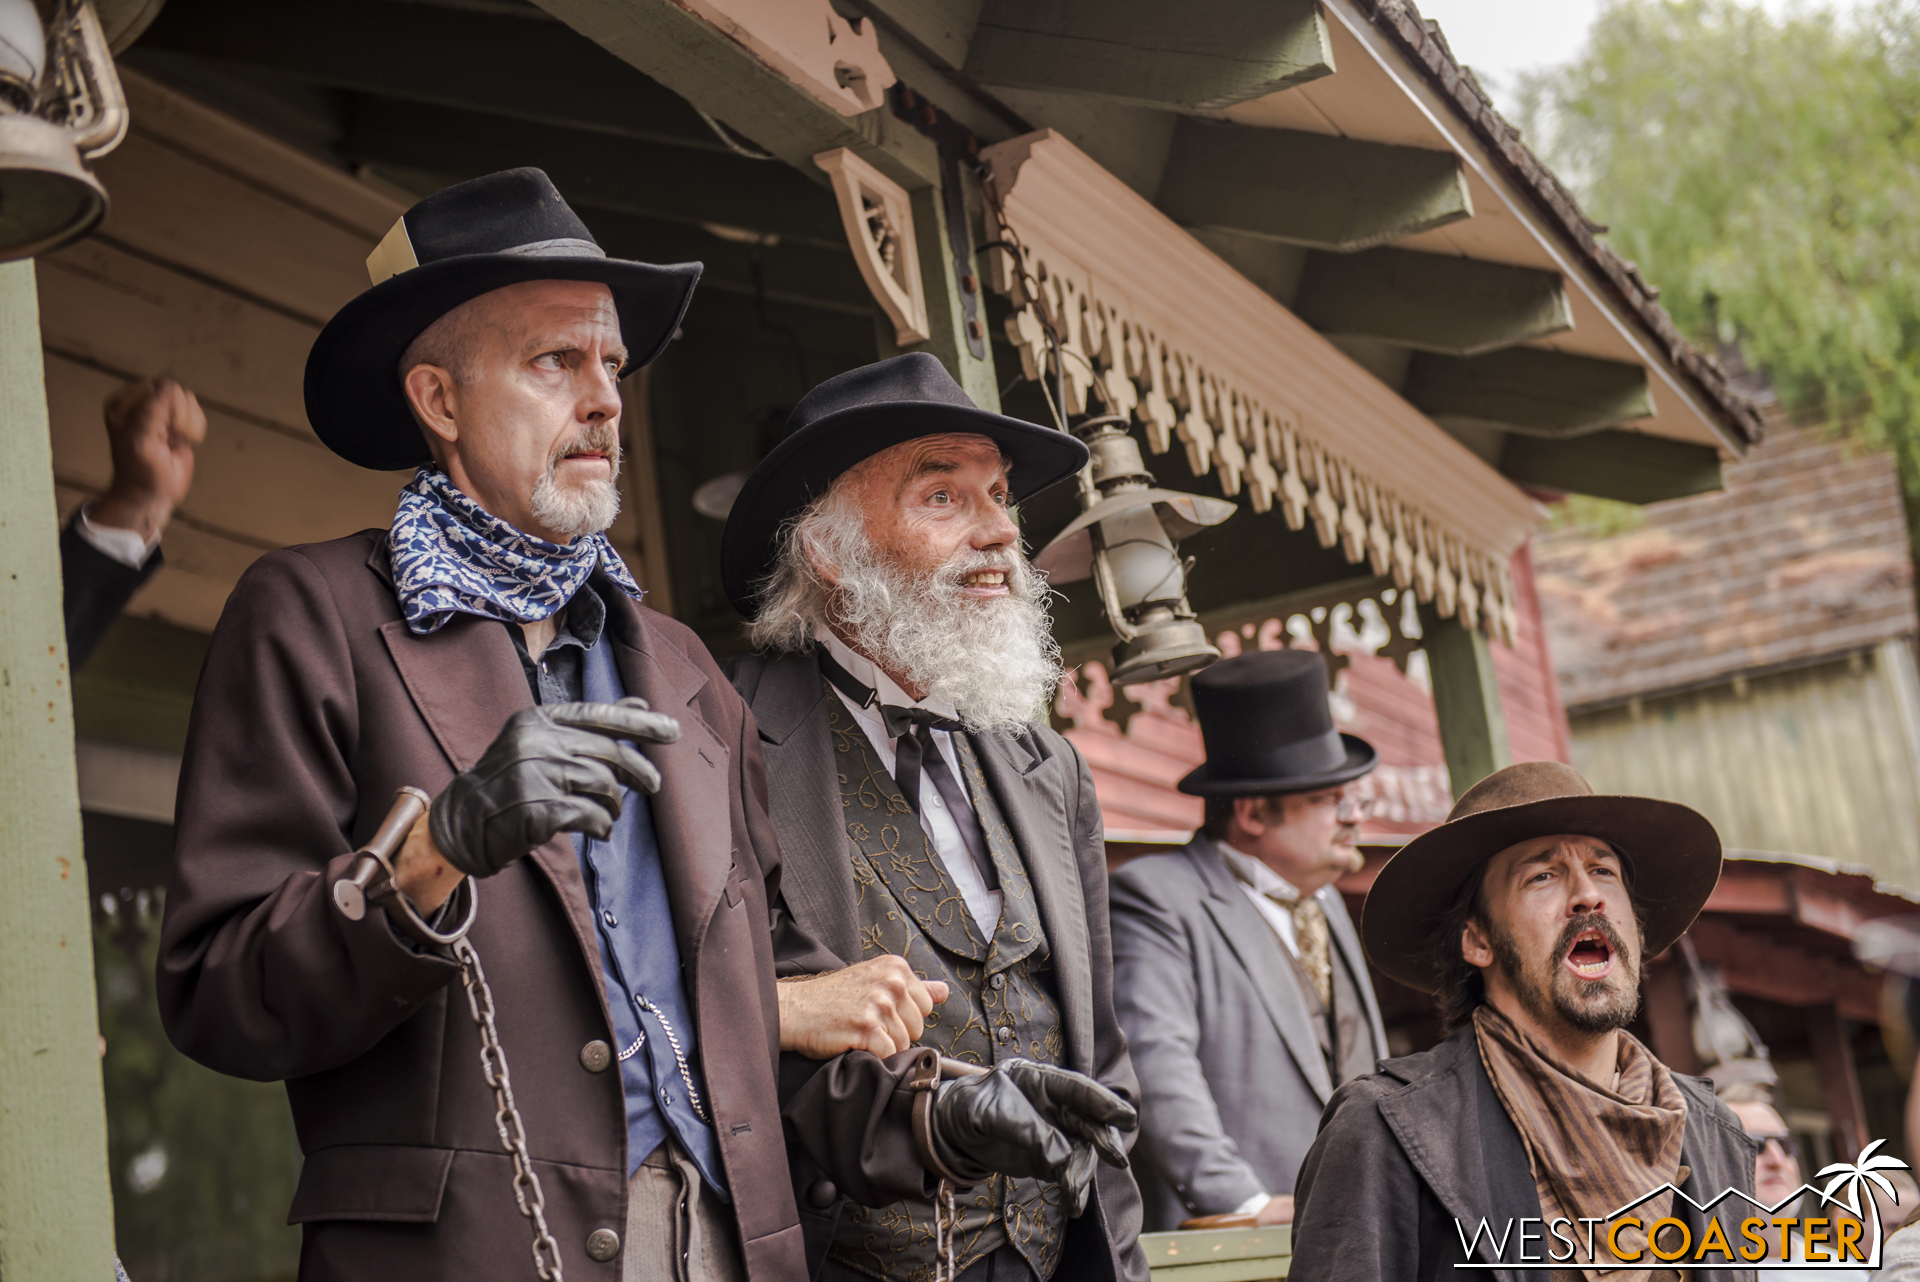 Judge Roy Bean is eager to lock up Ox and calls onto the crowd to judge Mayfield's guilt.